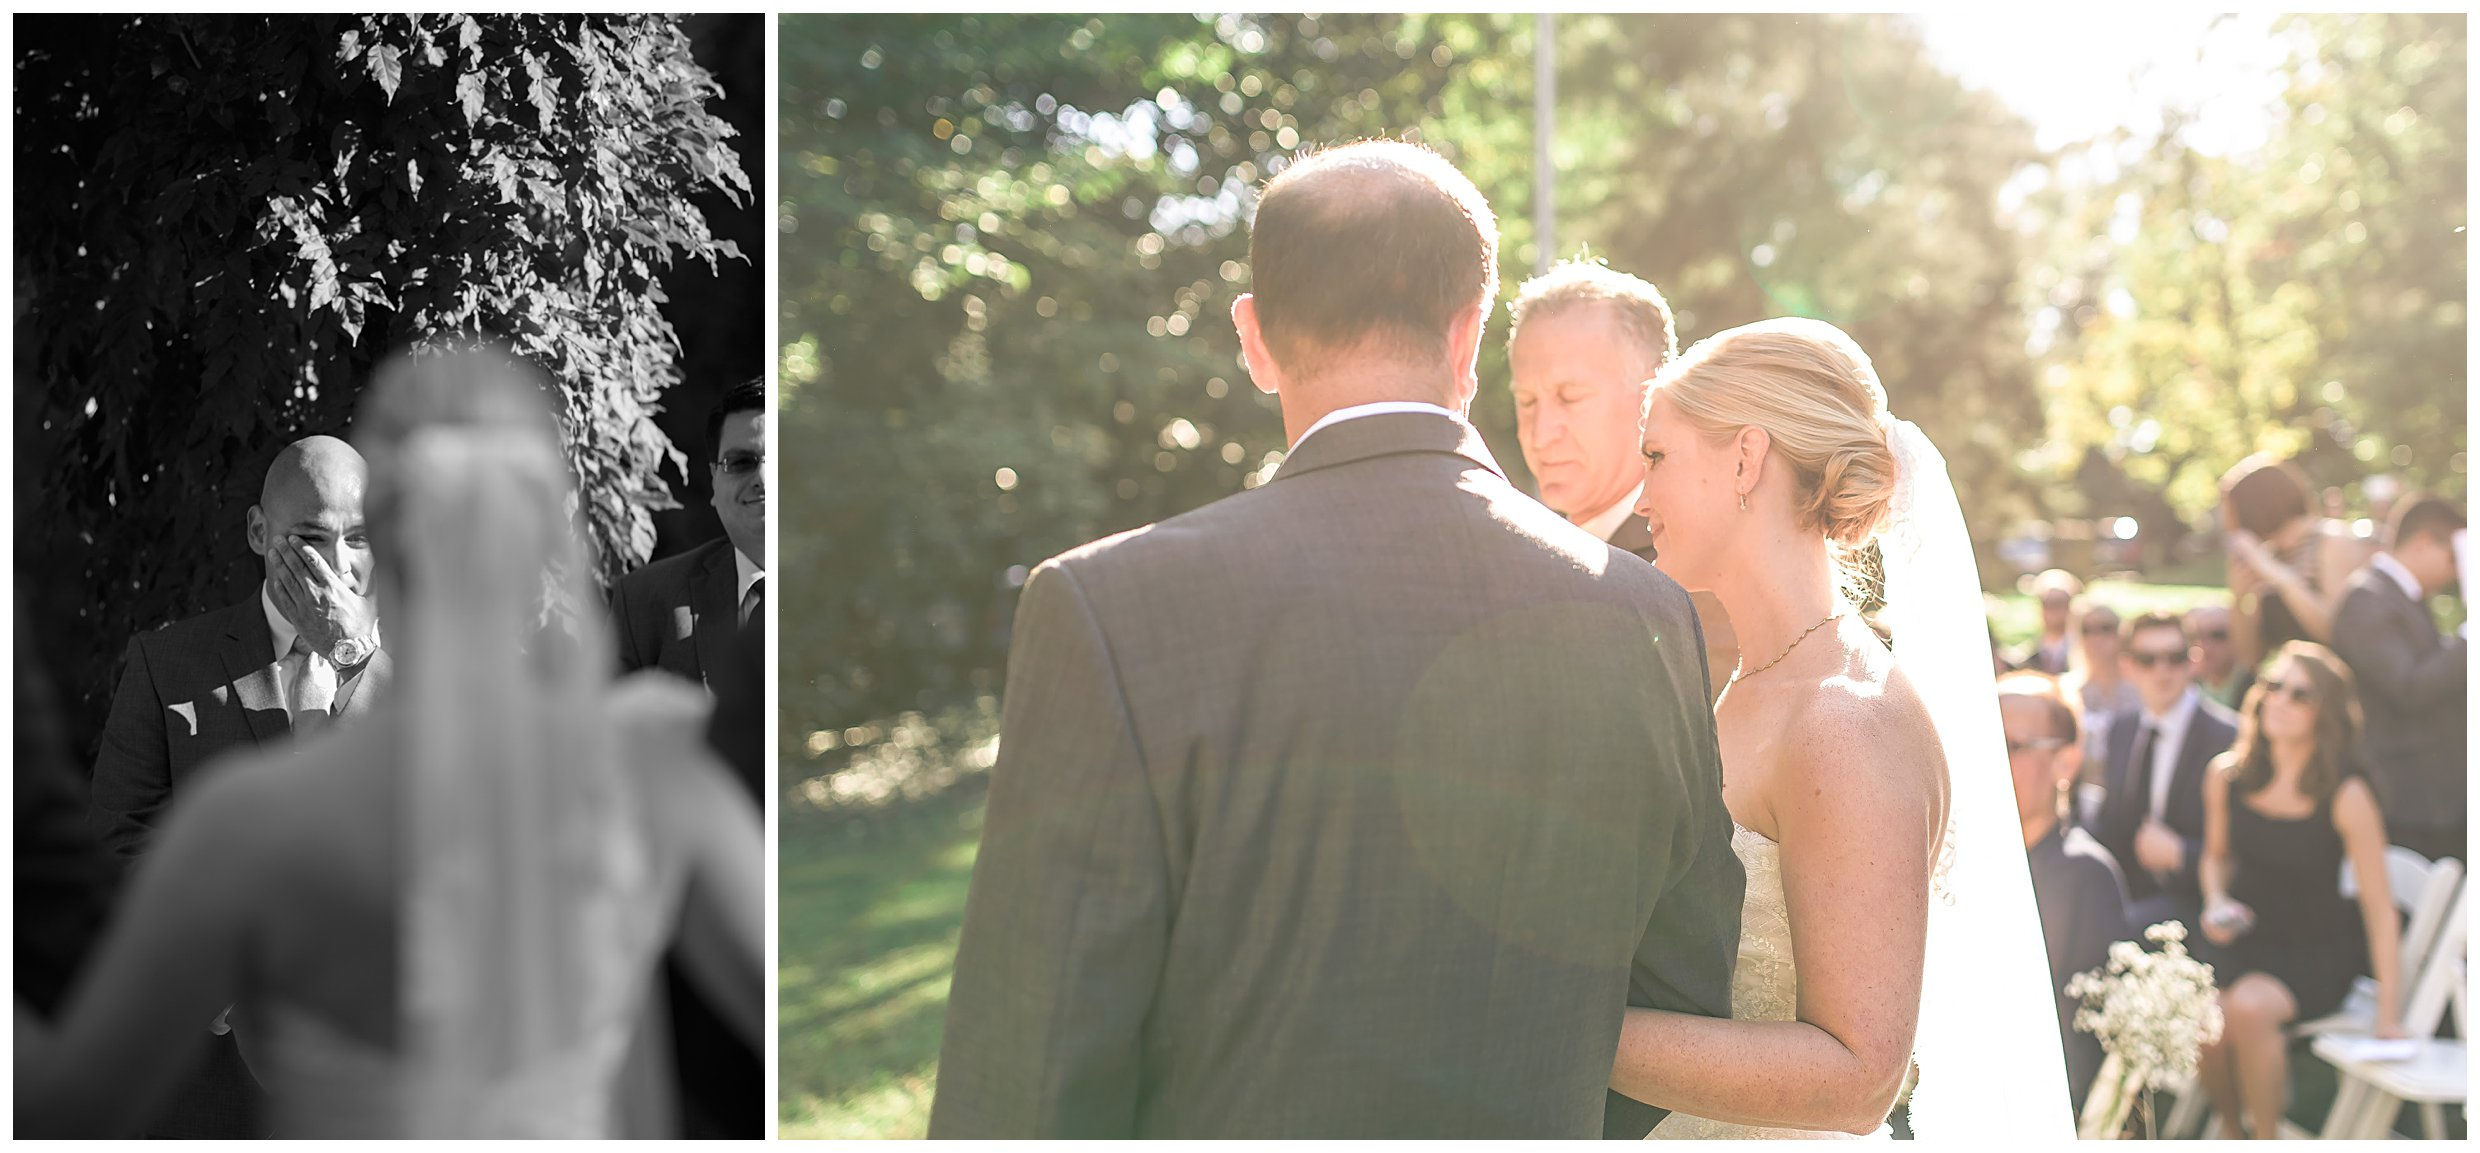 Jose-and-Jacqui-Hendry-house-arlington-virginia-wedding-photographer-charleston-south carolina-wedding-photographer-navy-blue-pink-sunset-wedding-outdoor-earthy-eco-friendly-photographer-viginia wedding--447.jpg